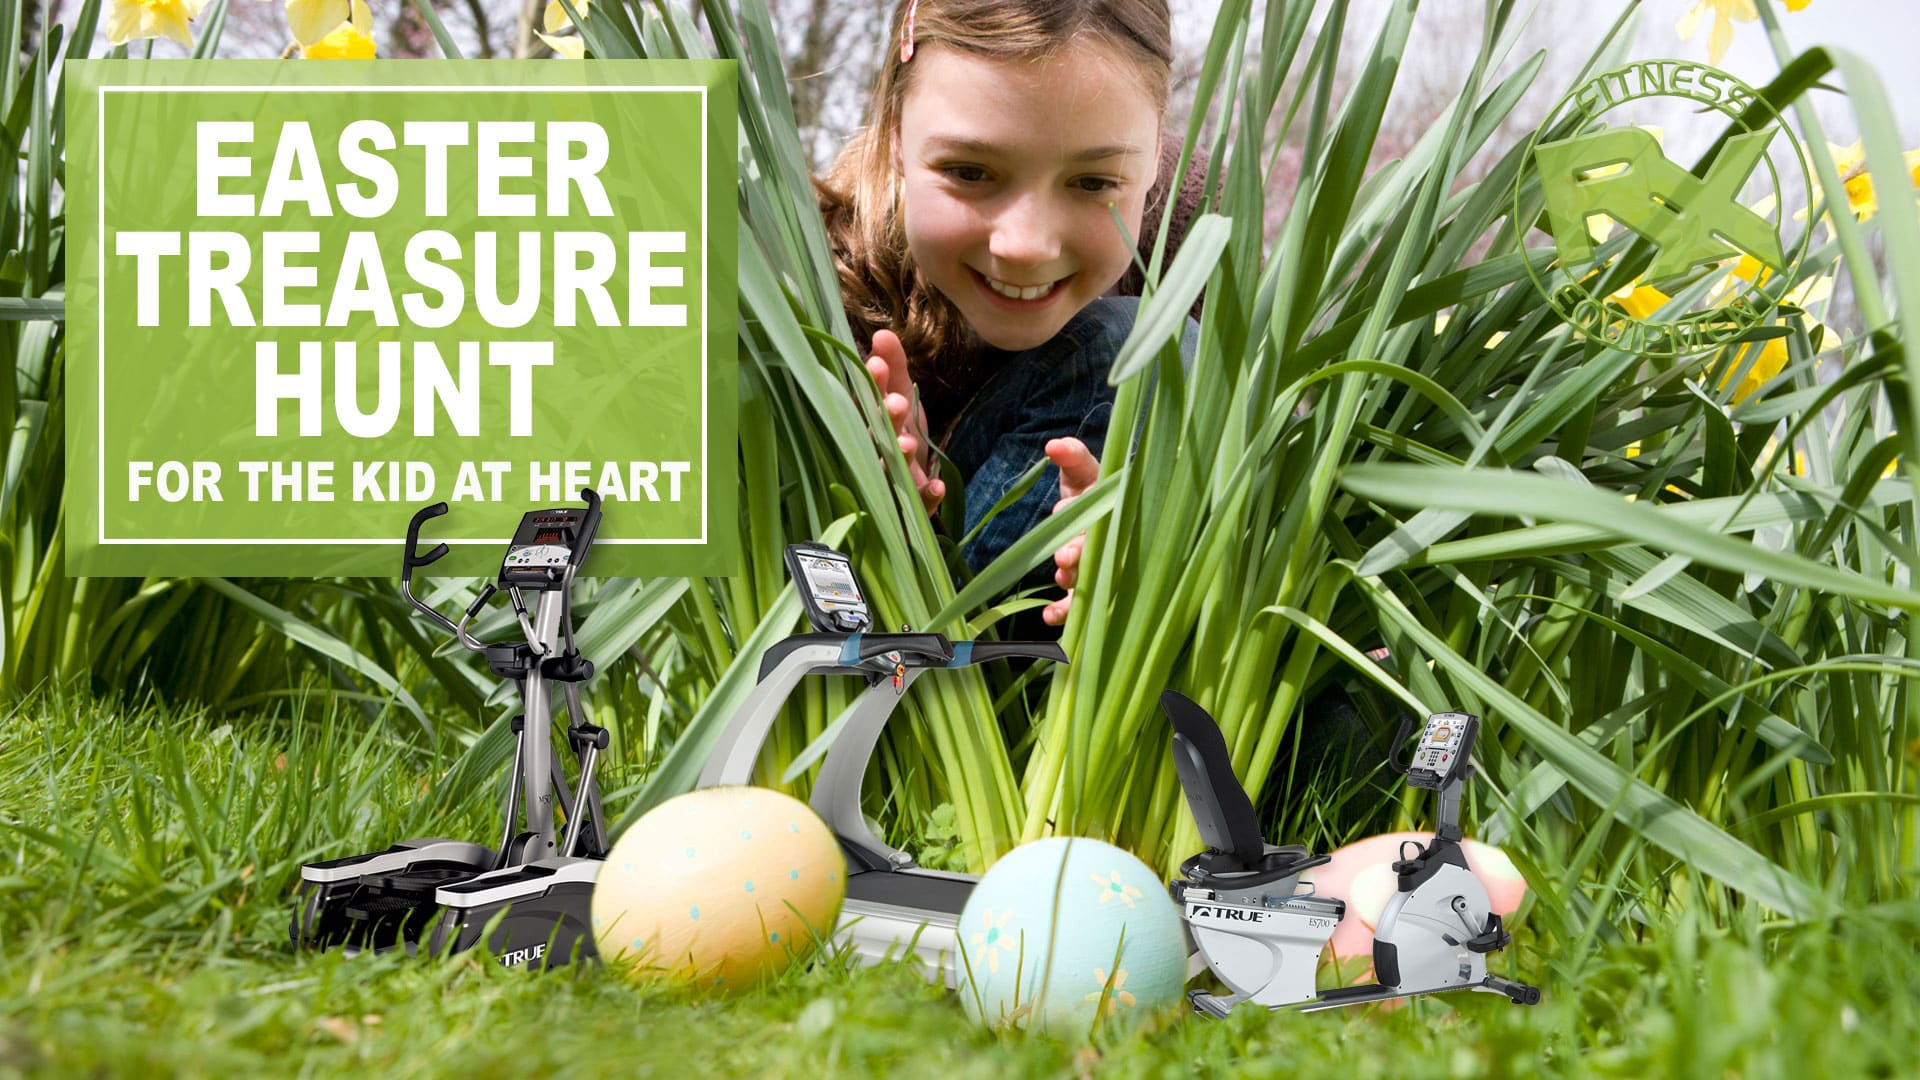 AA Easter Treasure Hunt for the kid at heart